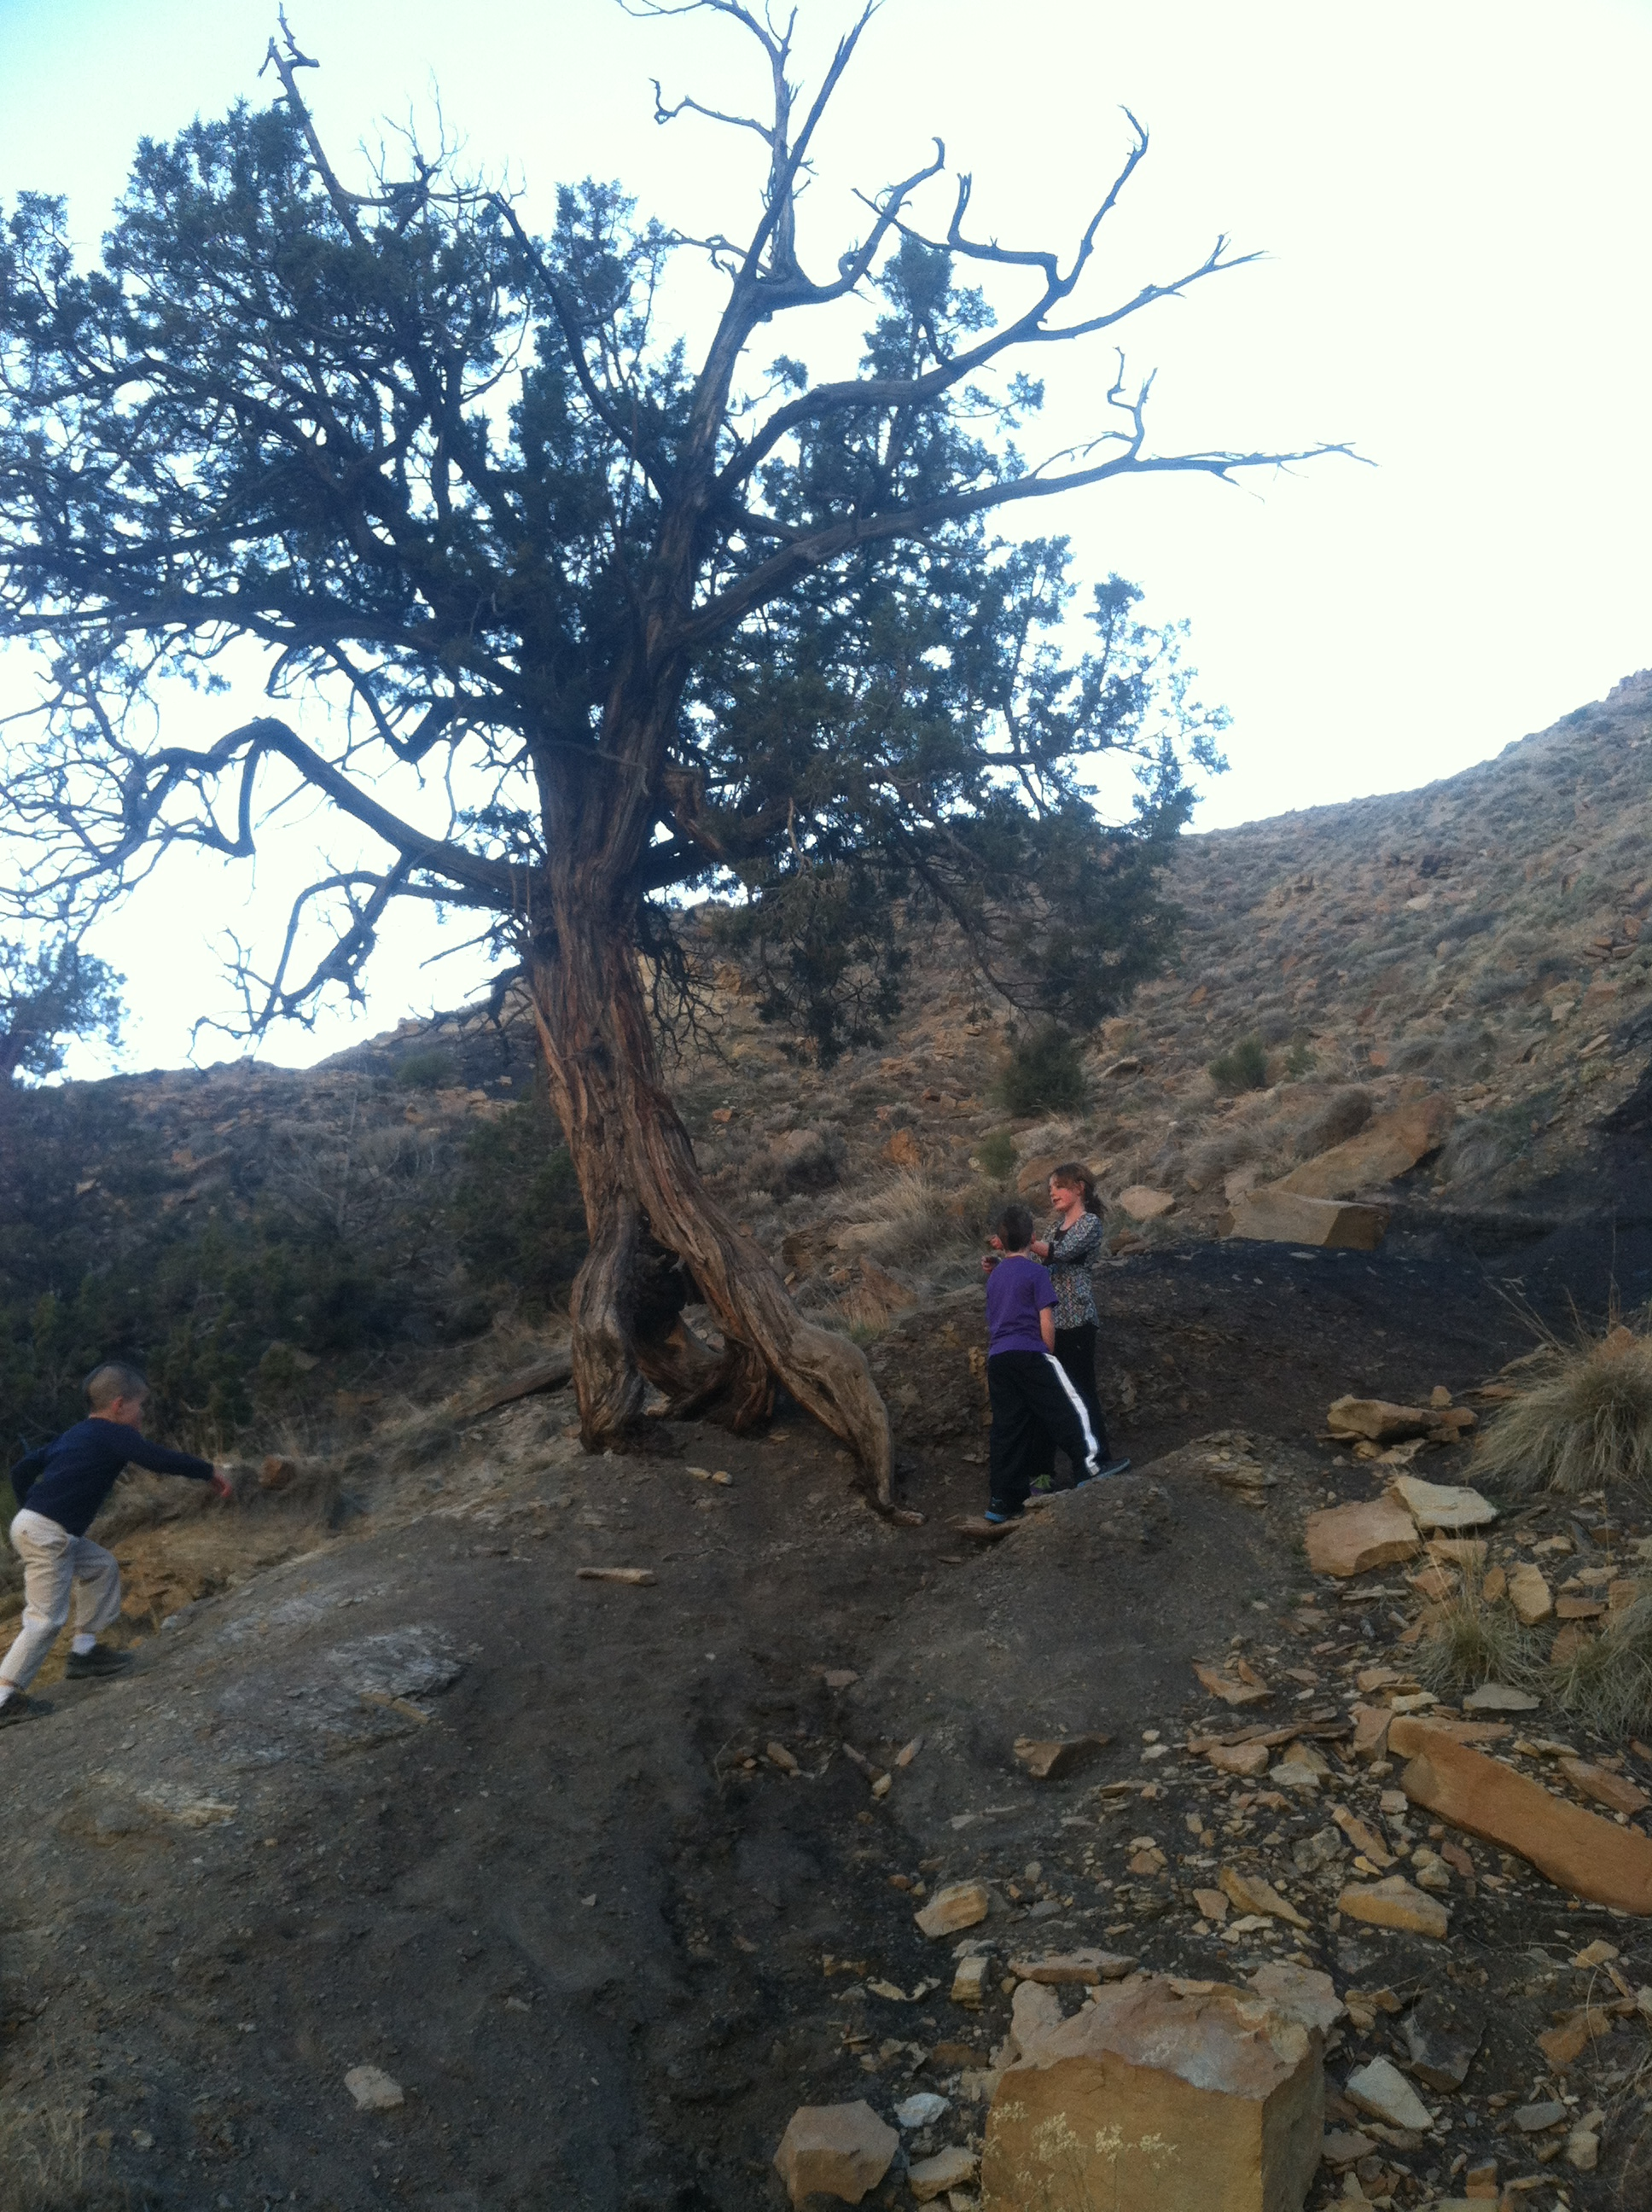 Lots of coal dirt on the trail, and this super cool tree with roots that looked like legs. Probably an Ent.